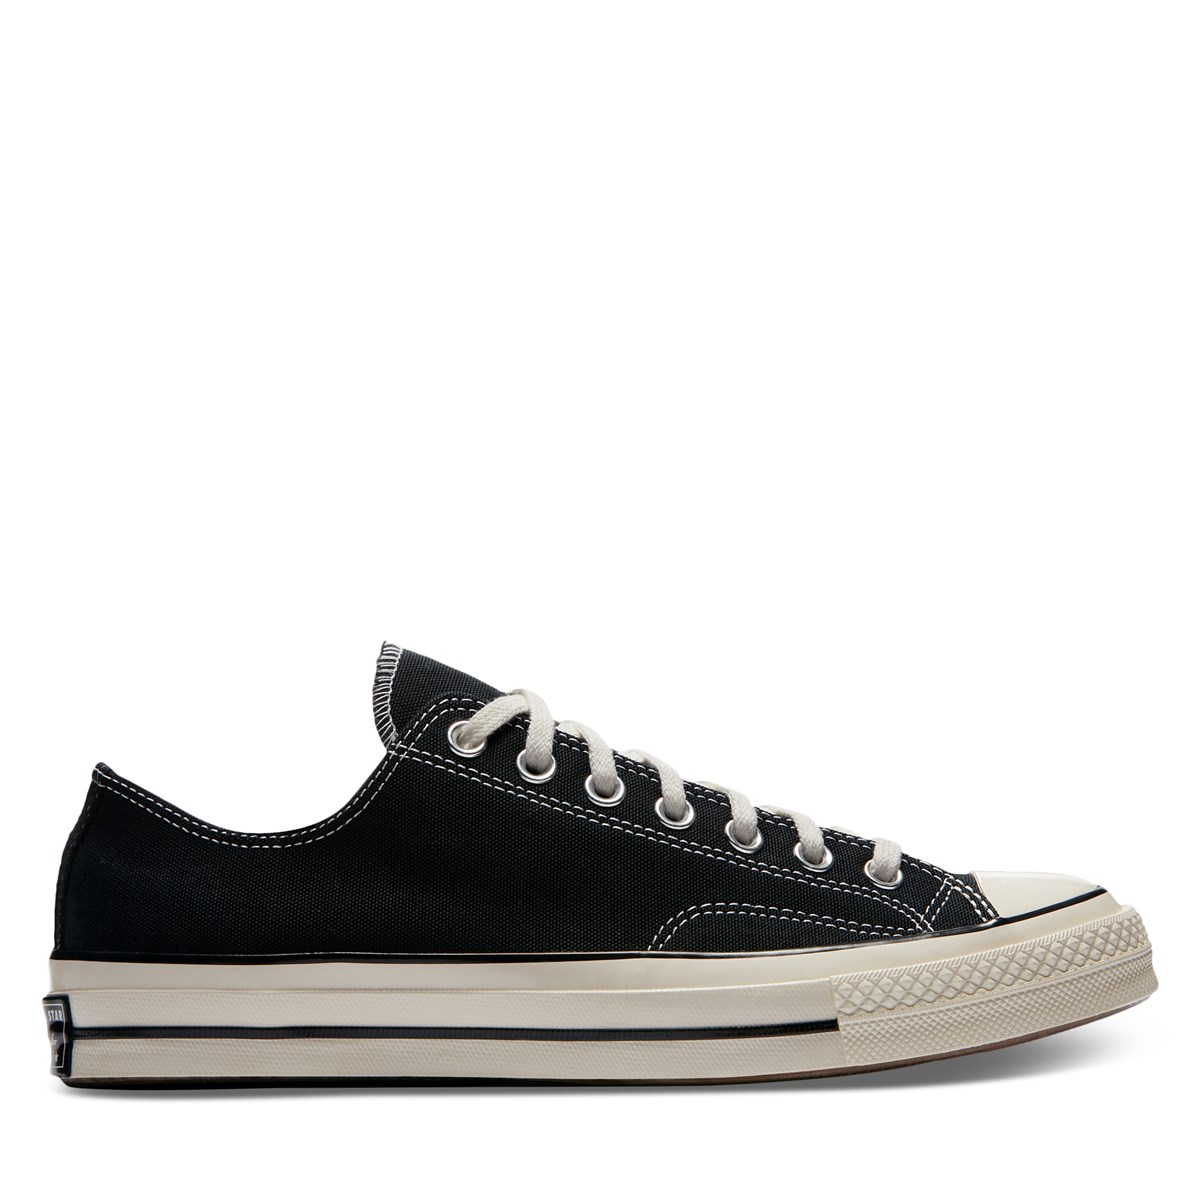 Chuck 70 Vintage Ox Sneakers in Black